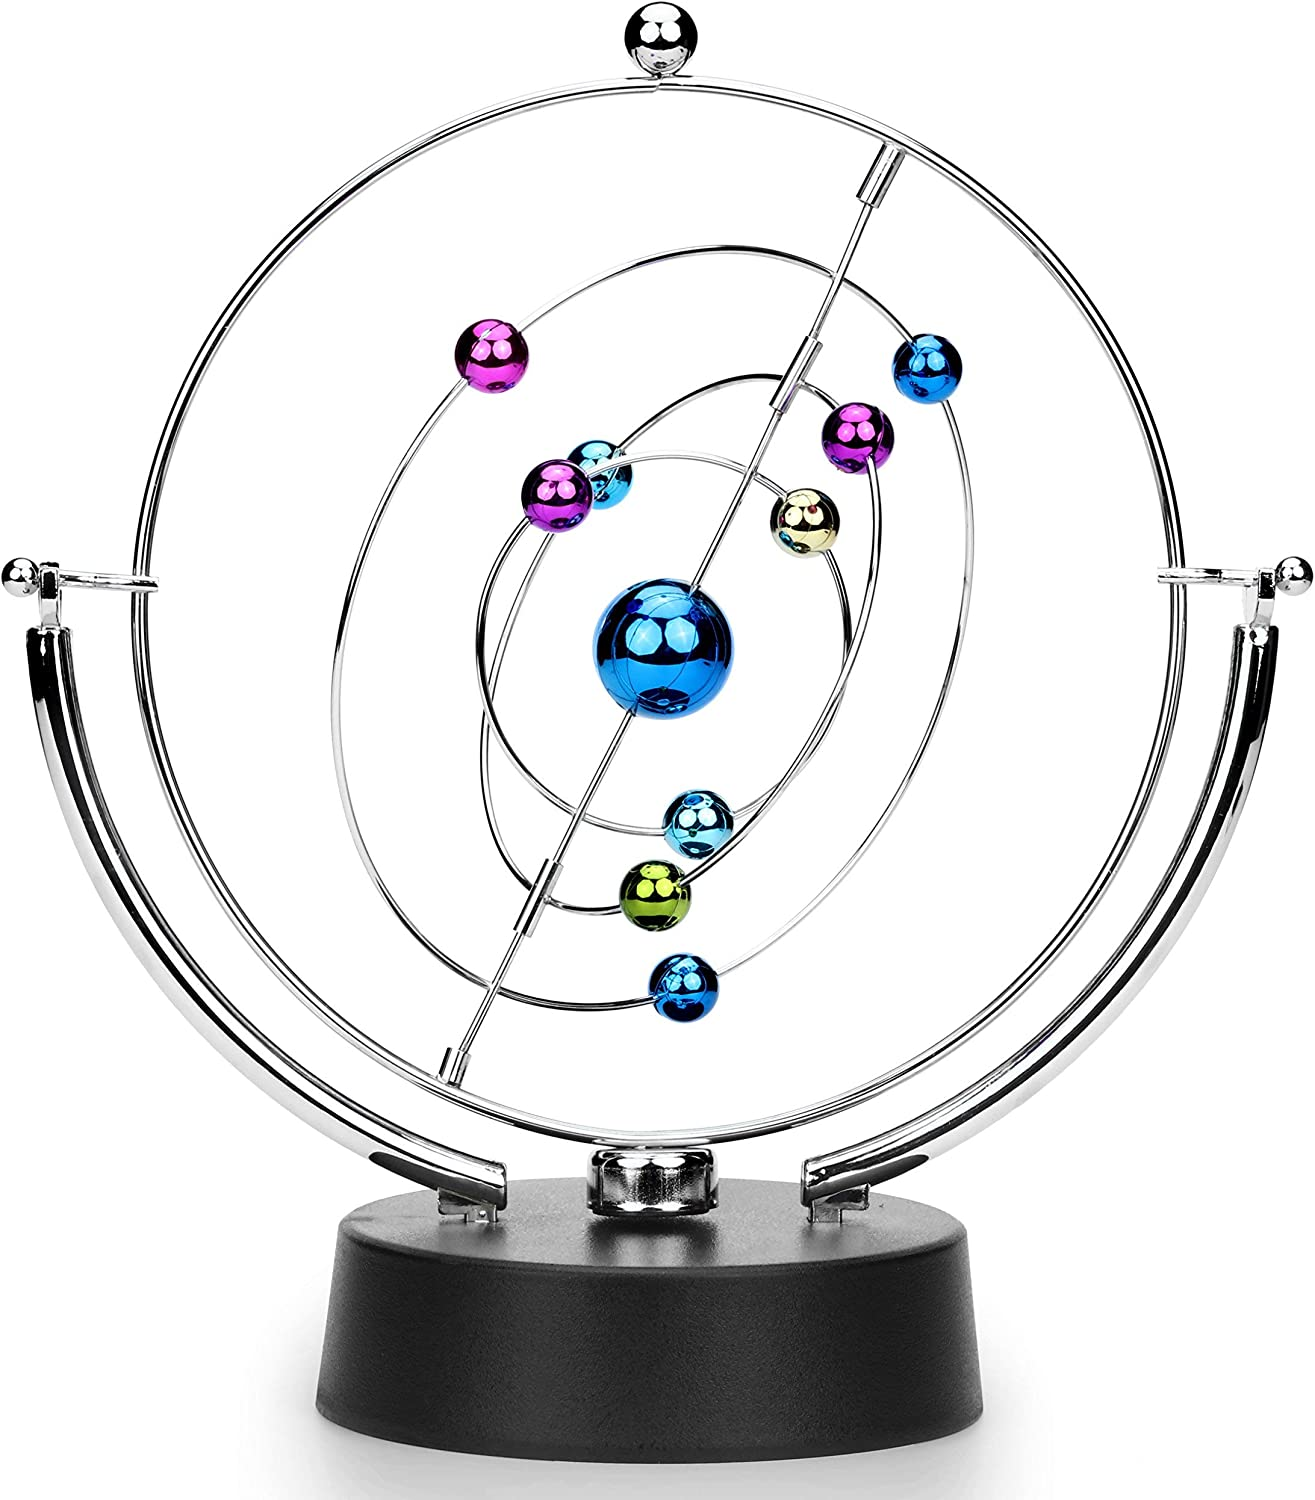 SciencePurchase Kinetic Perpetual Motion Galaxy, Outer Space Gadget That Flips and Rotates in Continuous Motion, Battery Operated Desktop Toy